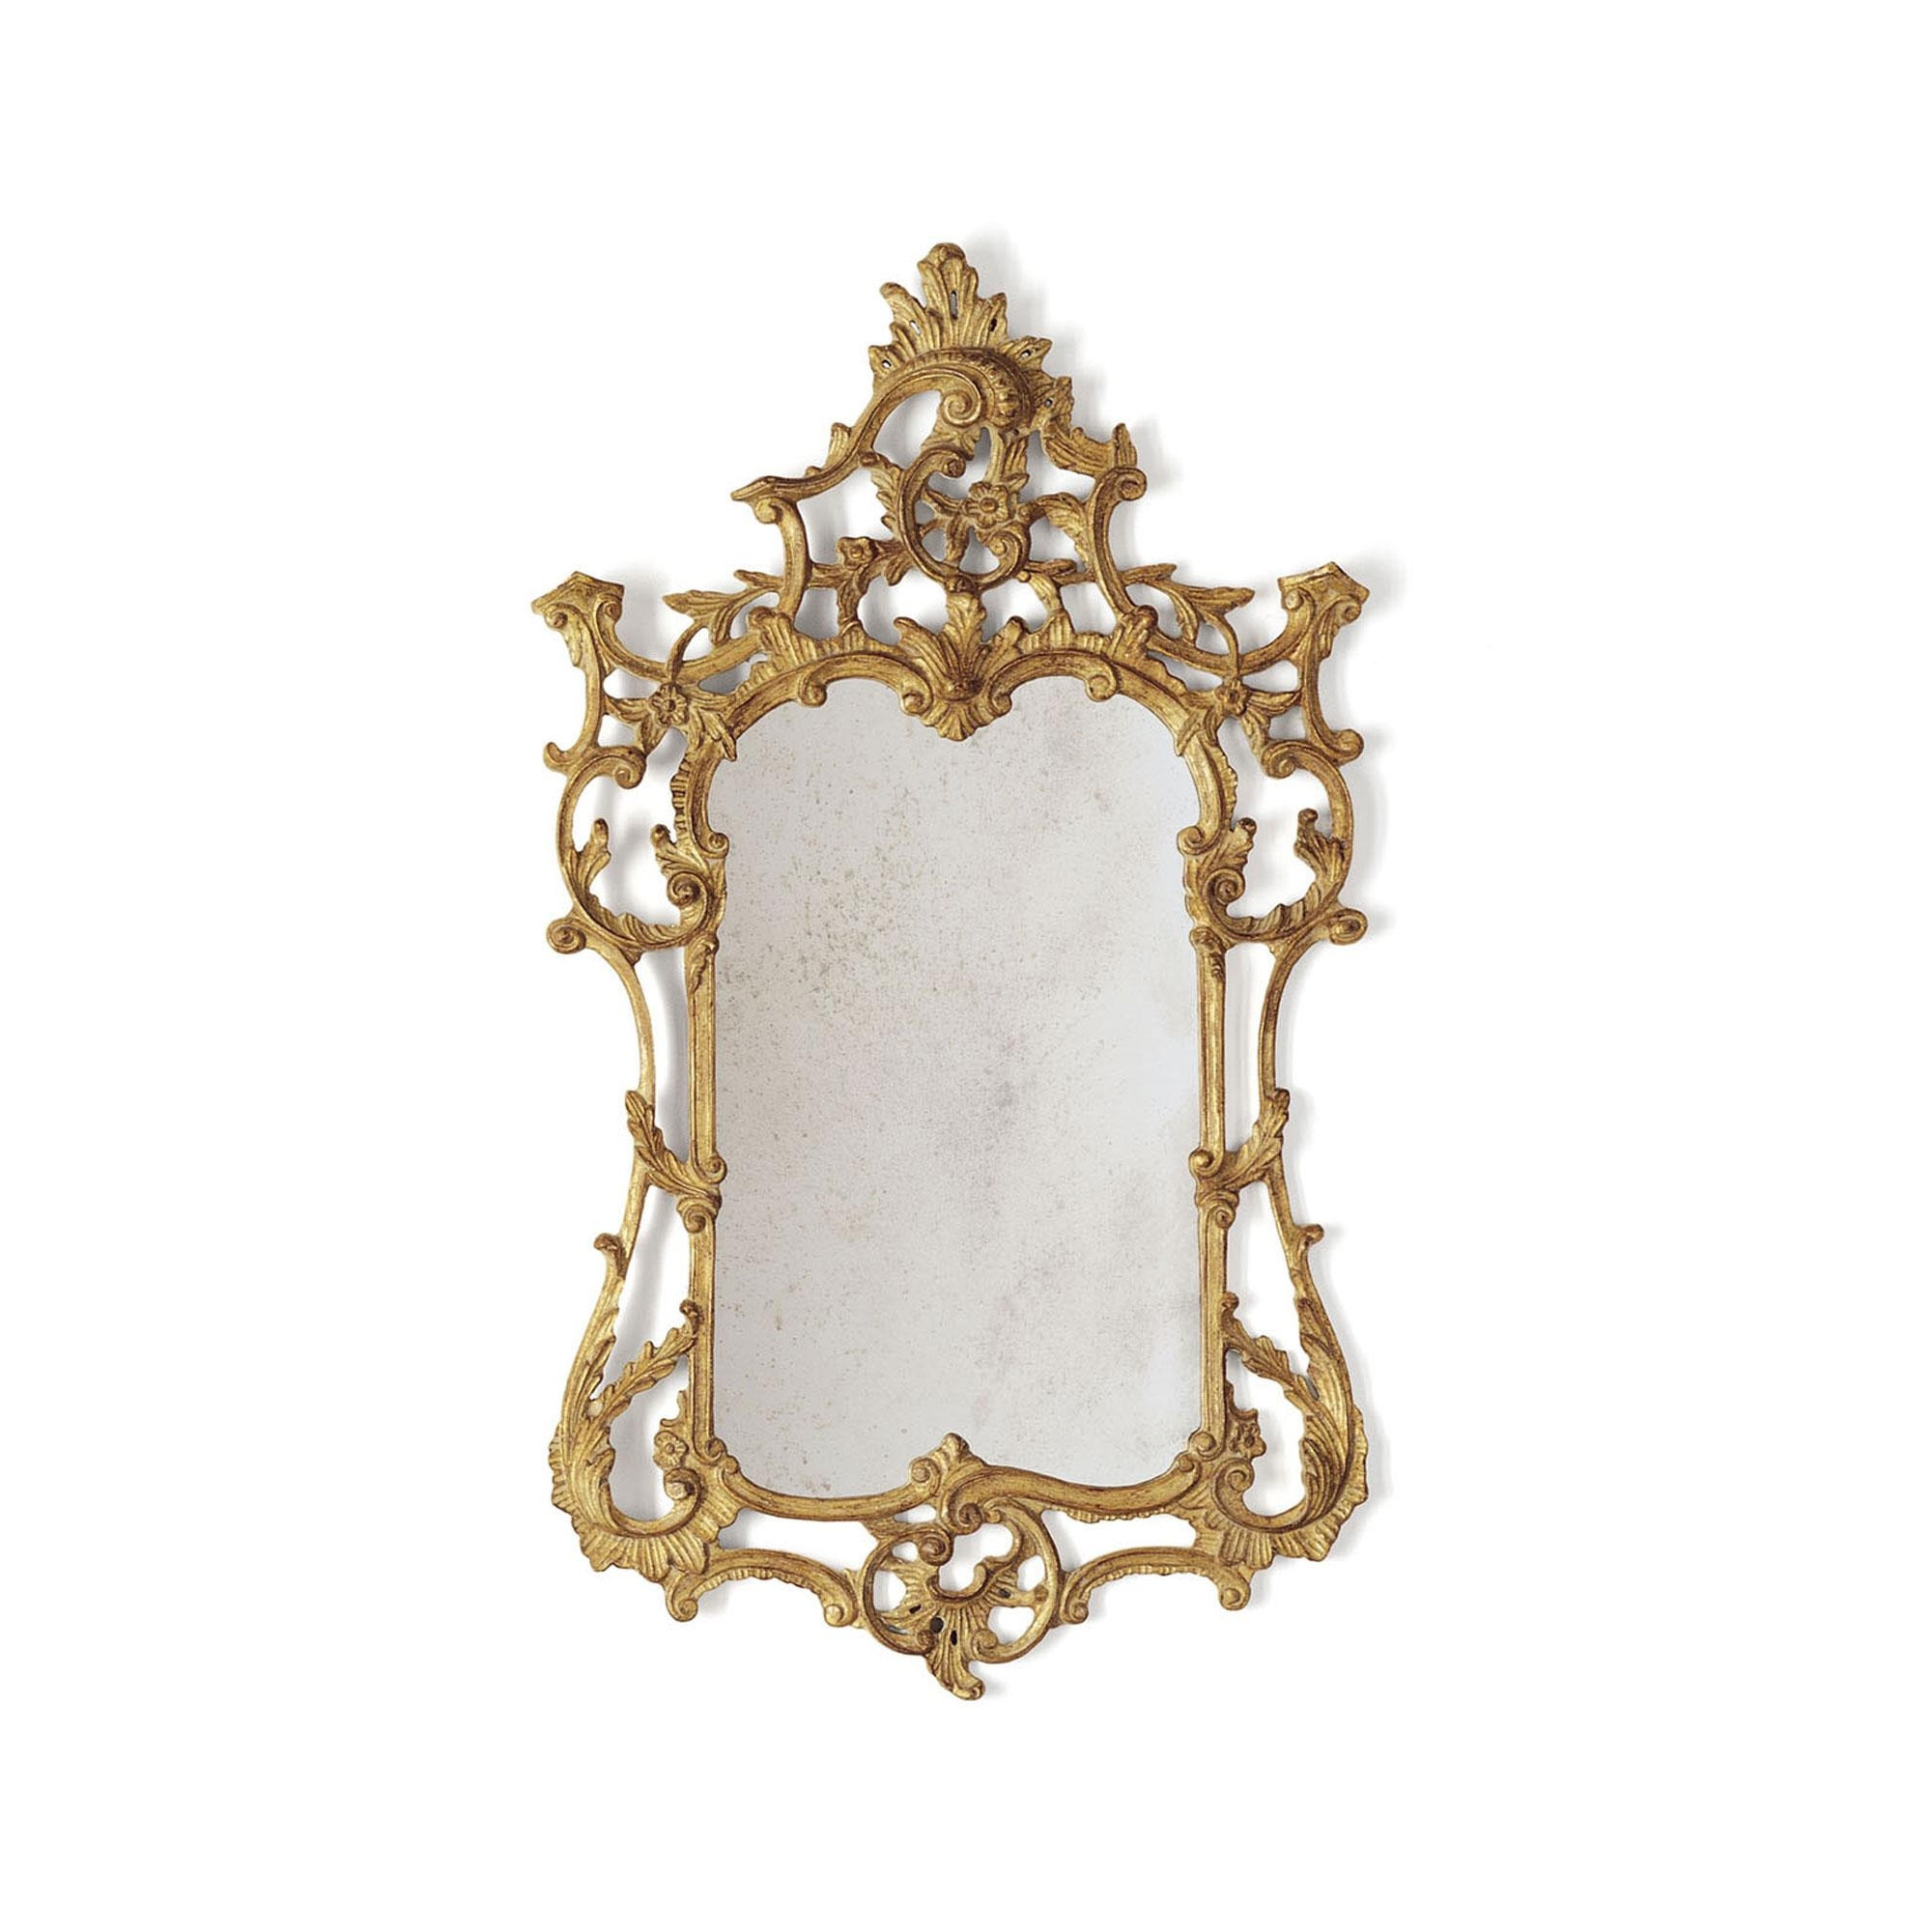 Rococo Mirror | Hand Carved Mirror | Beaumont & Fletcher With Regard To Rococo Mirror Gold (Image 20 of 20)